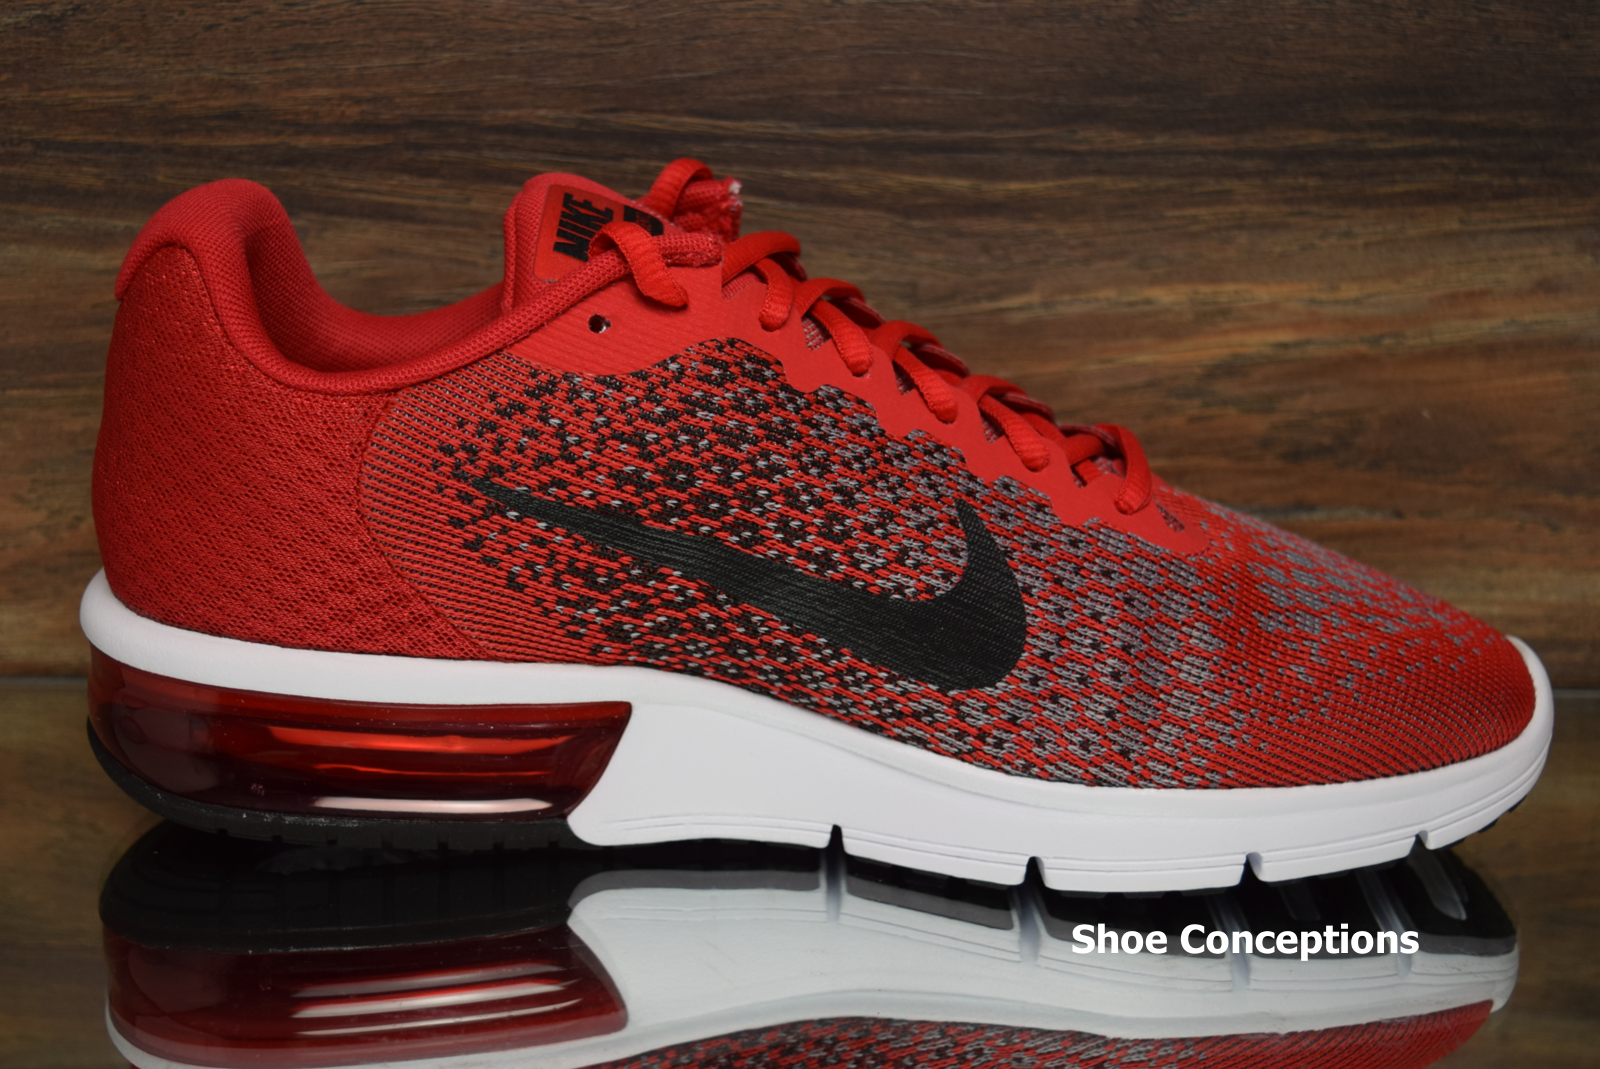 official photos 08c34 83e31 ... Nike Air Max Sequent 2 2 2 Red Black 852461-600 Running Shoes Men s ...